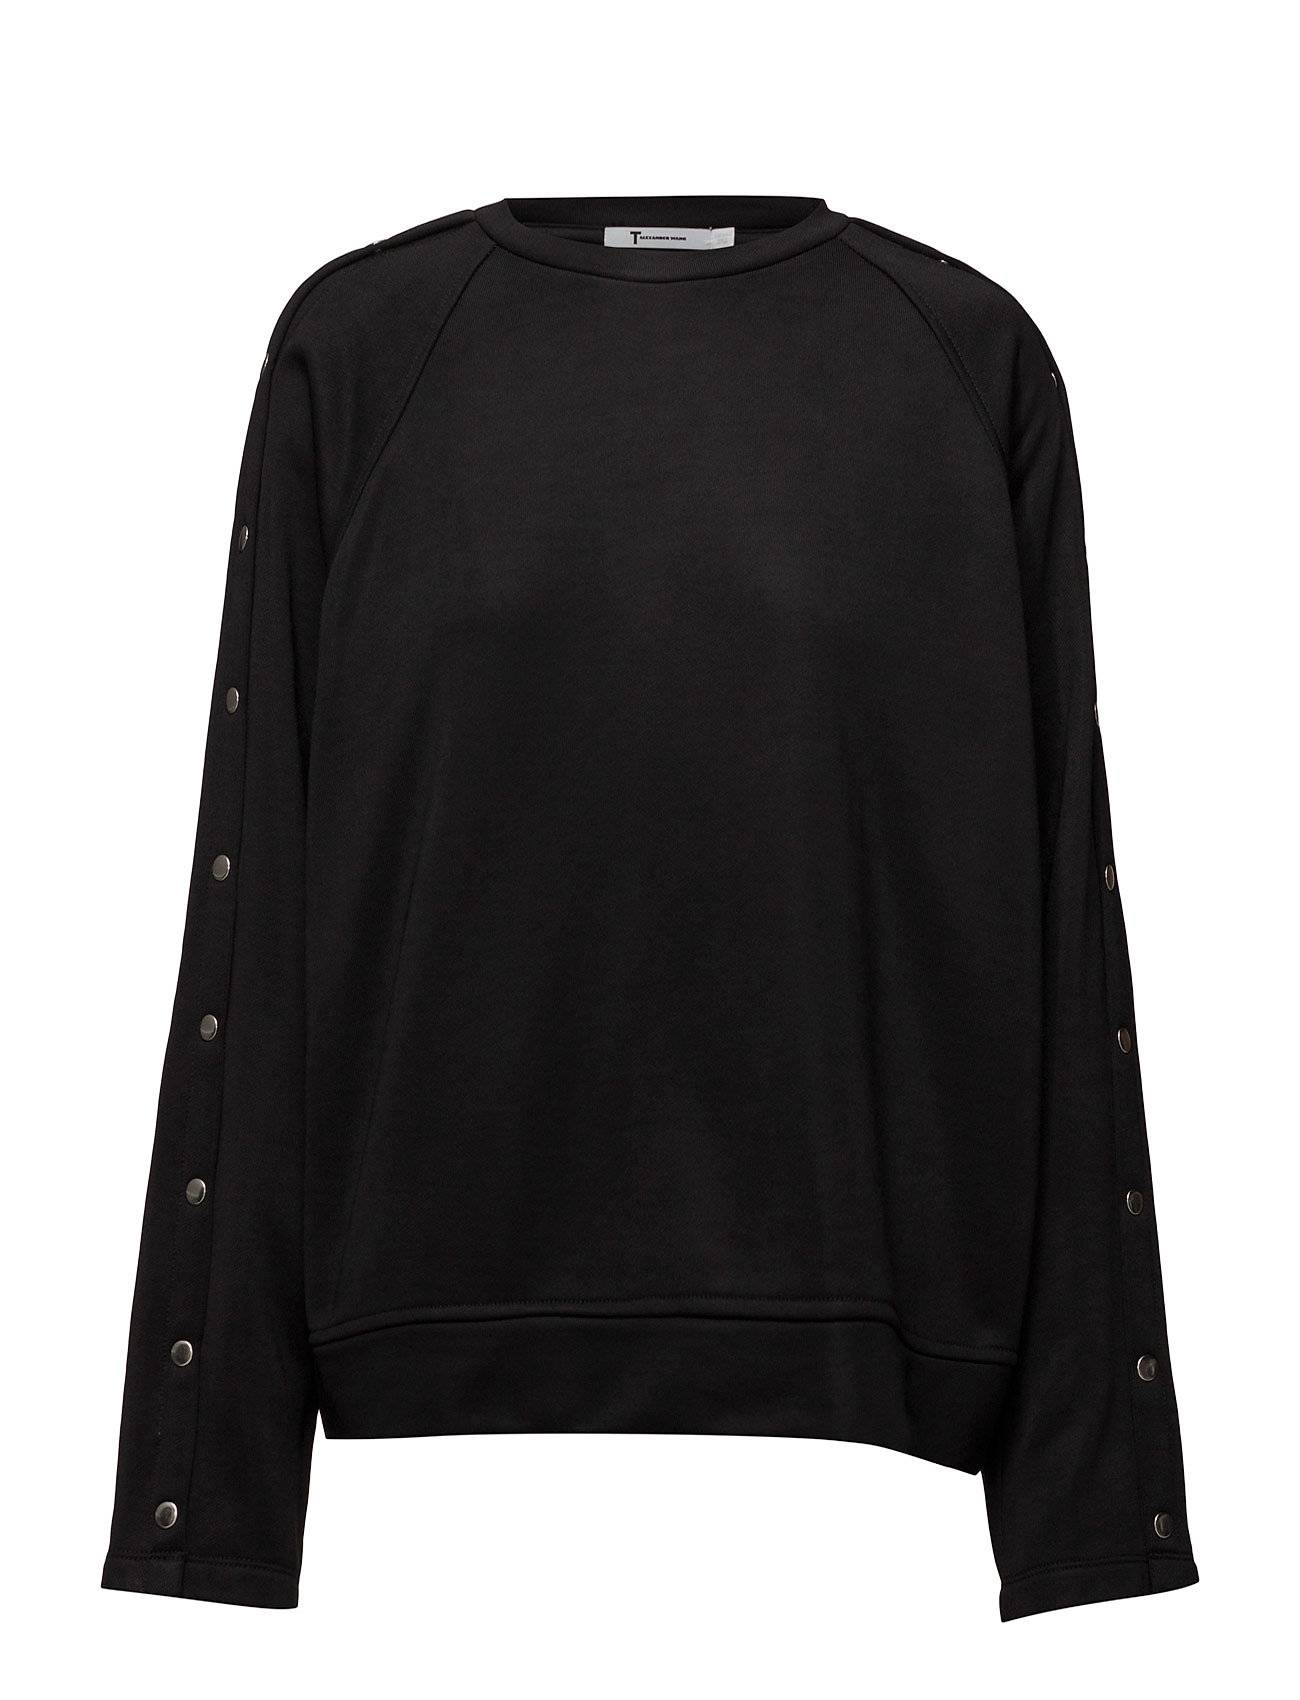 T by Alexander Wang Sleek French Terry Crewneck Sweatshirt W/ Snaps